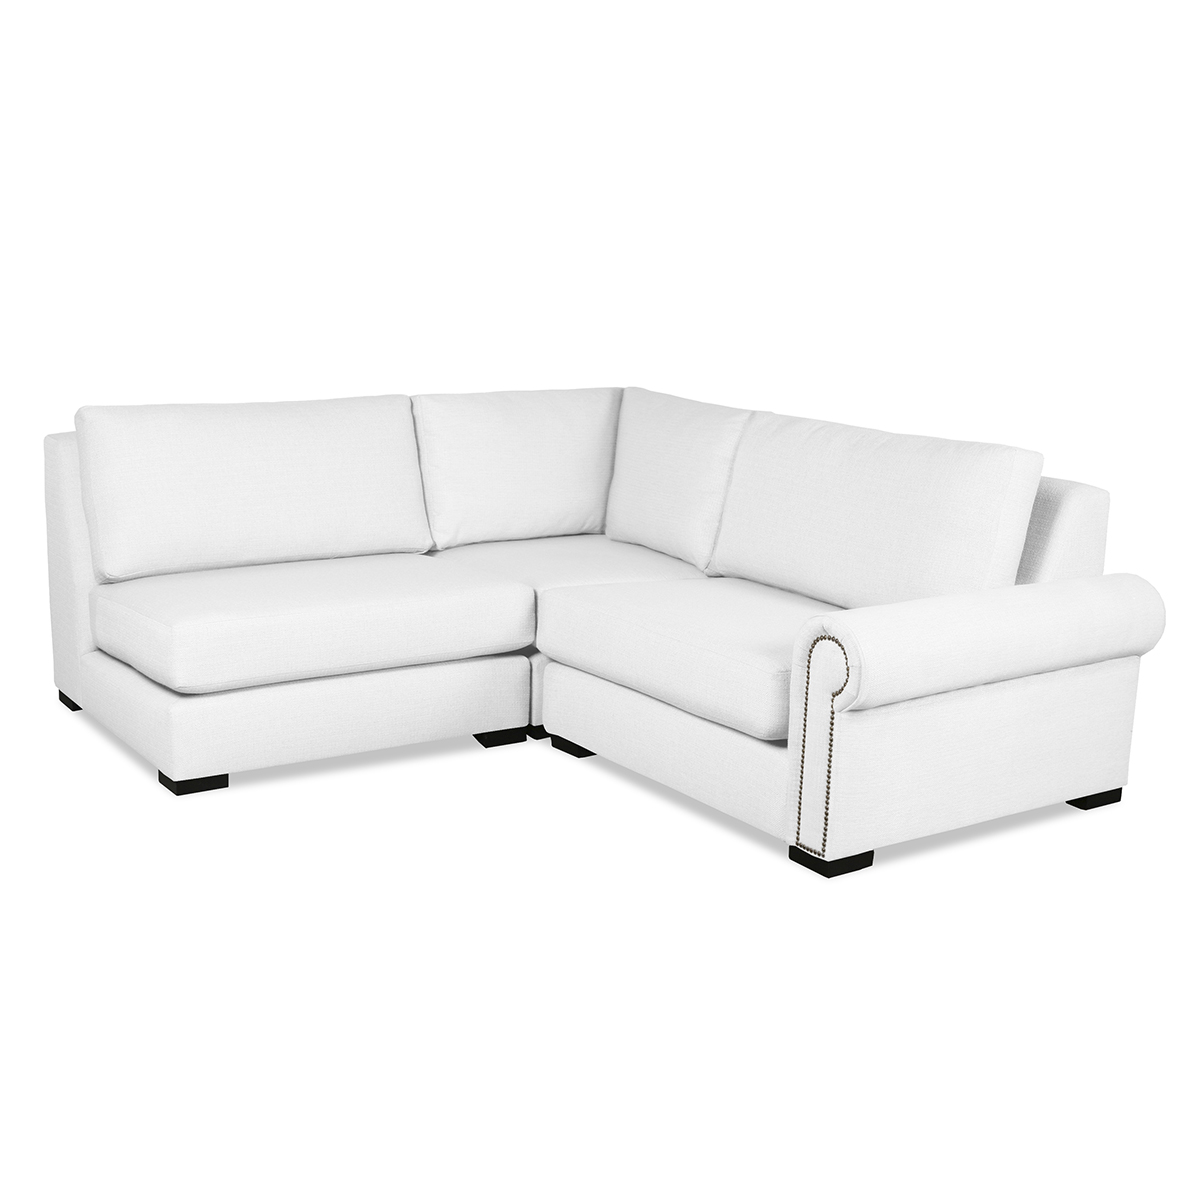 Lucile Modular Sectional Right And Left Arms L-Shape Mini